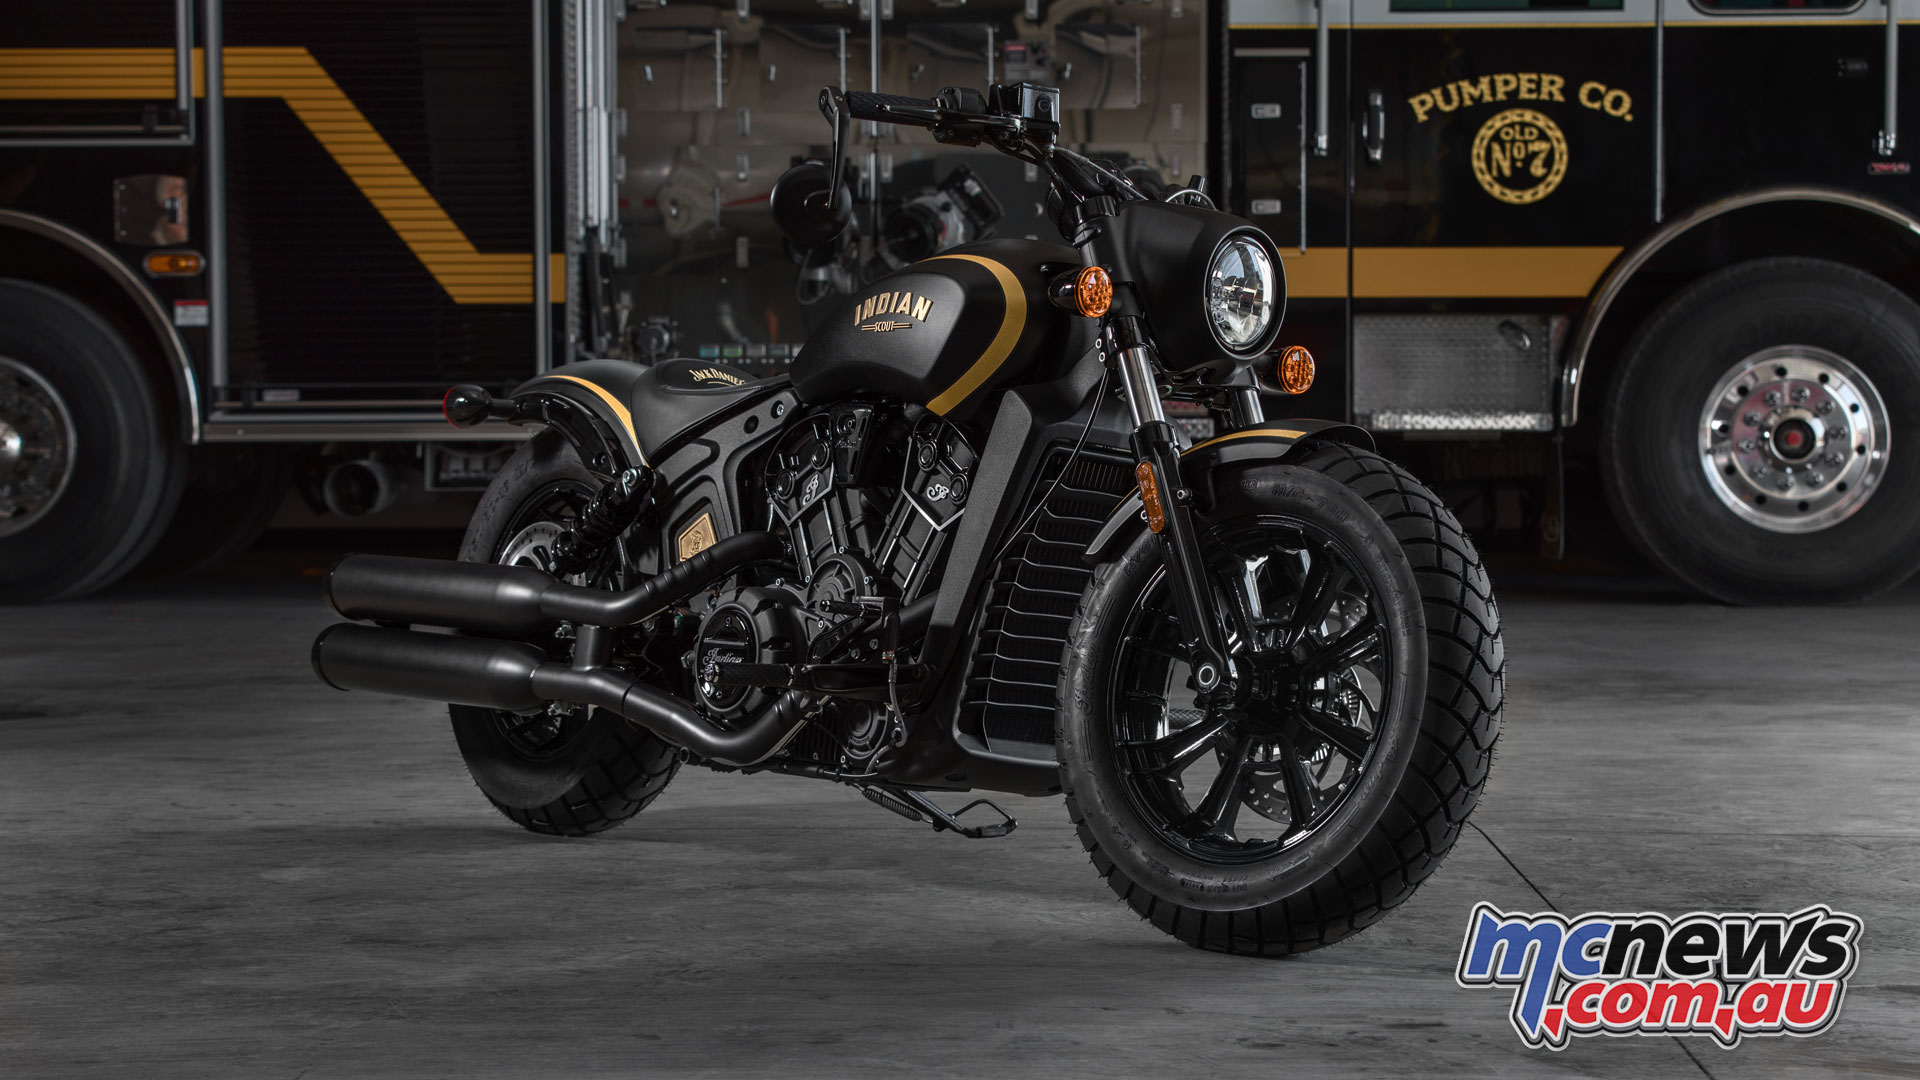 2018 Indian Motorcycle Rumors >> Indian Scout Bobber Jack Daniel's Limited Edition | MCNews.com.au